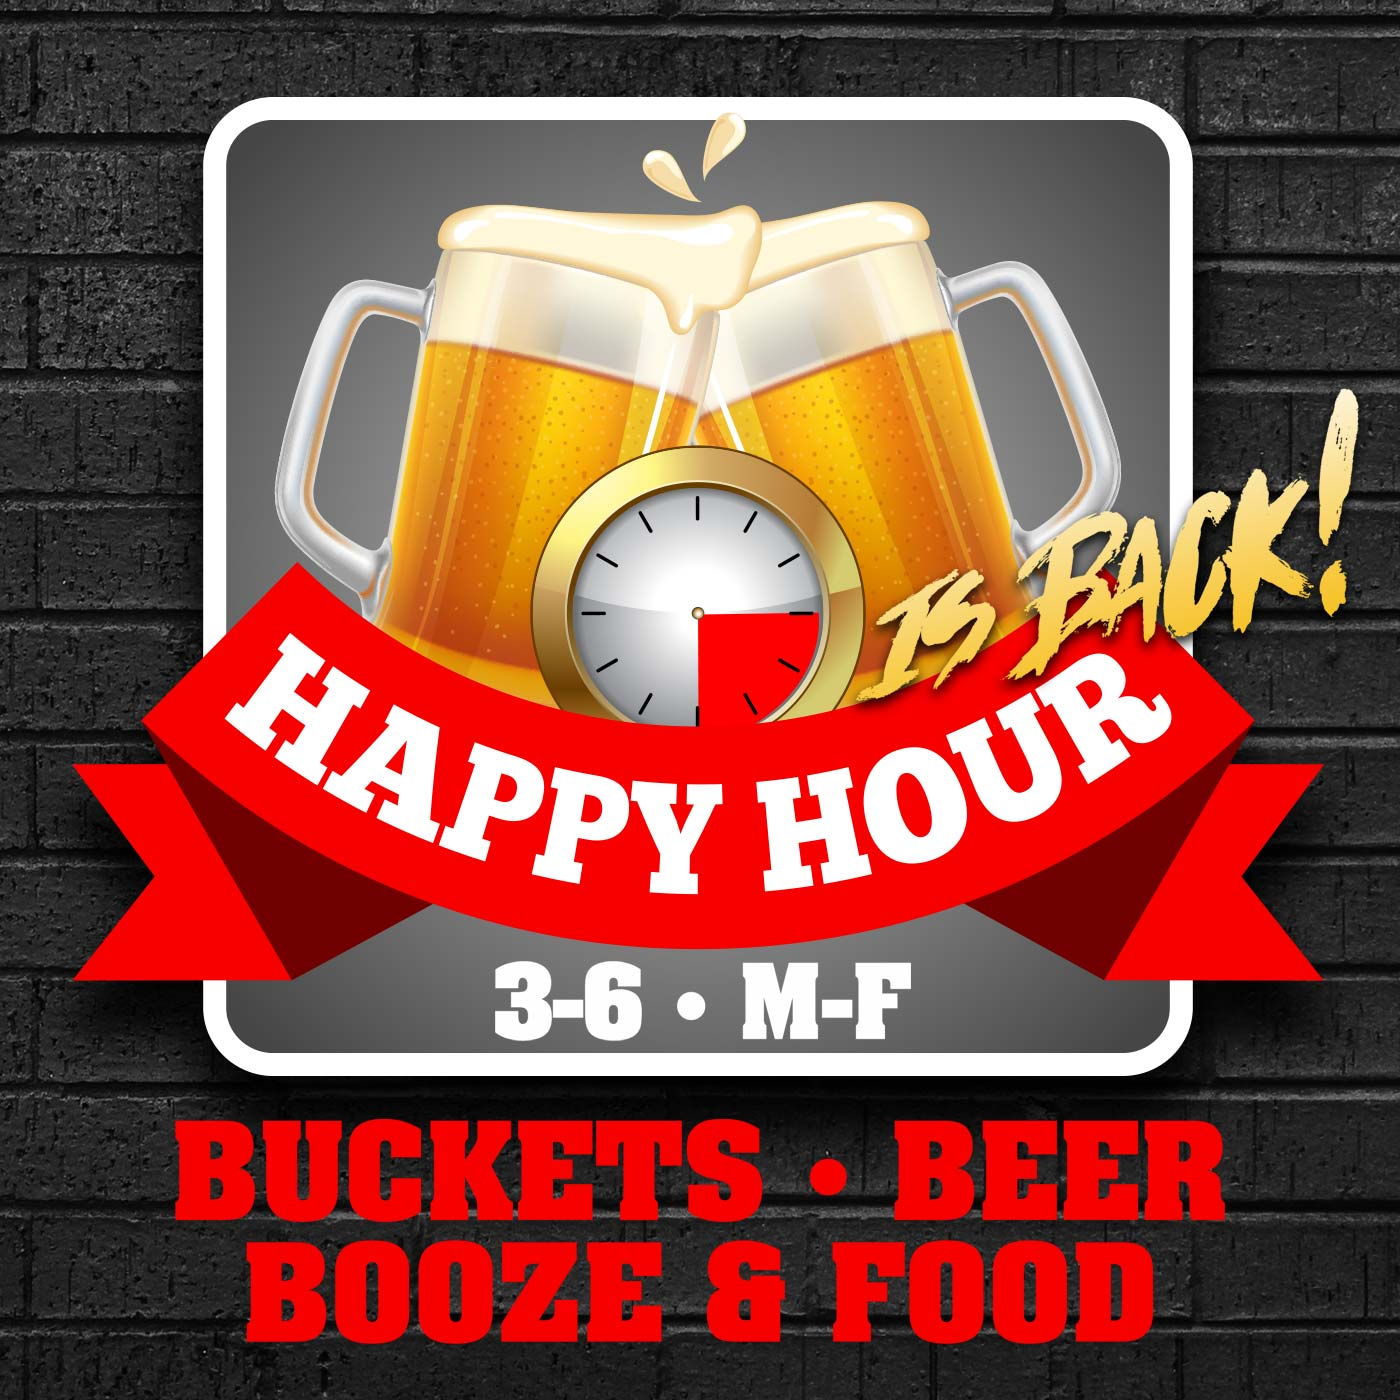 Happy Hour is back. 3-6 Monday-Friday. Buckets, Beer, Booze and Food